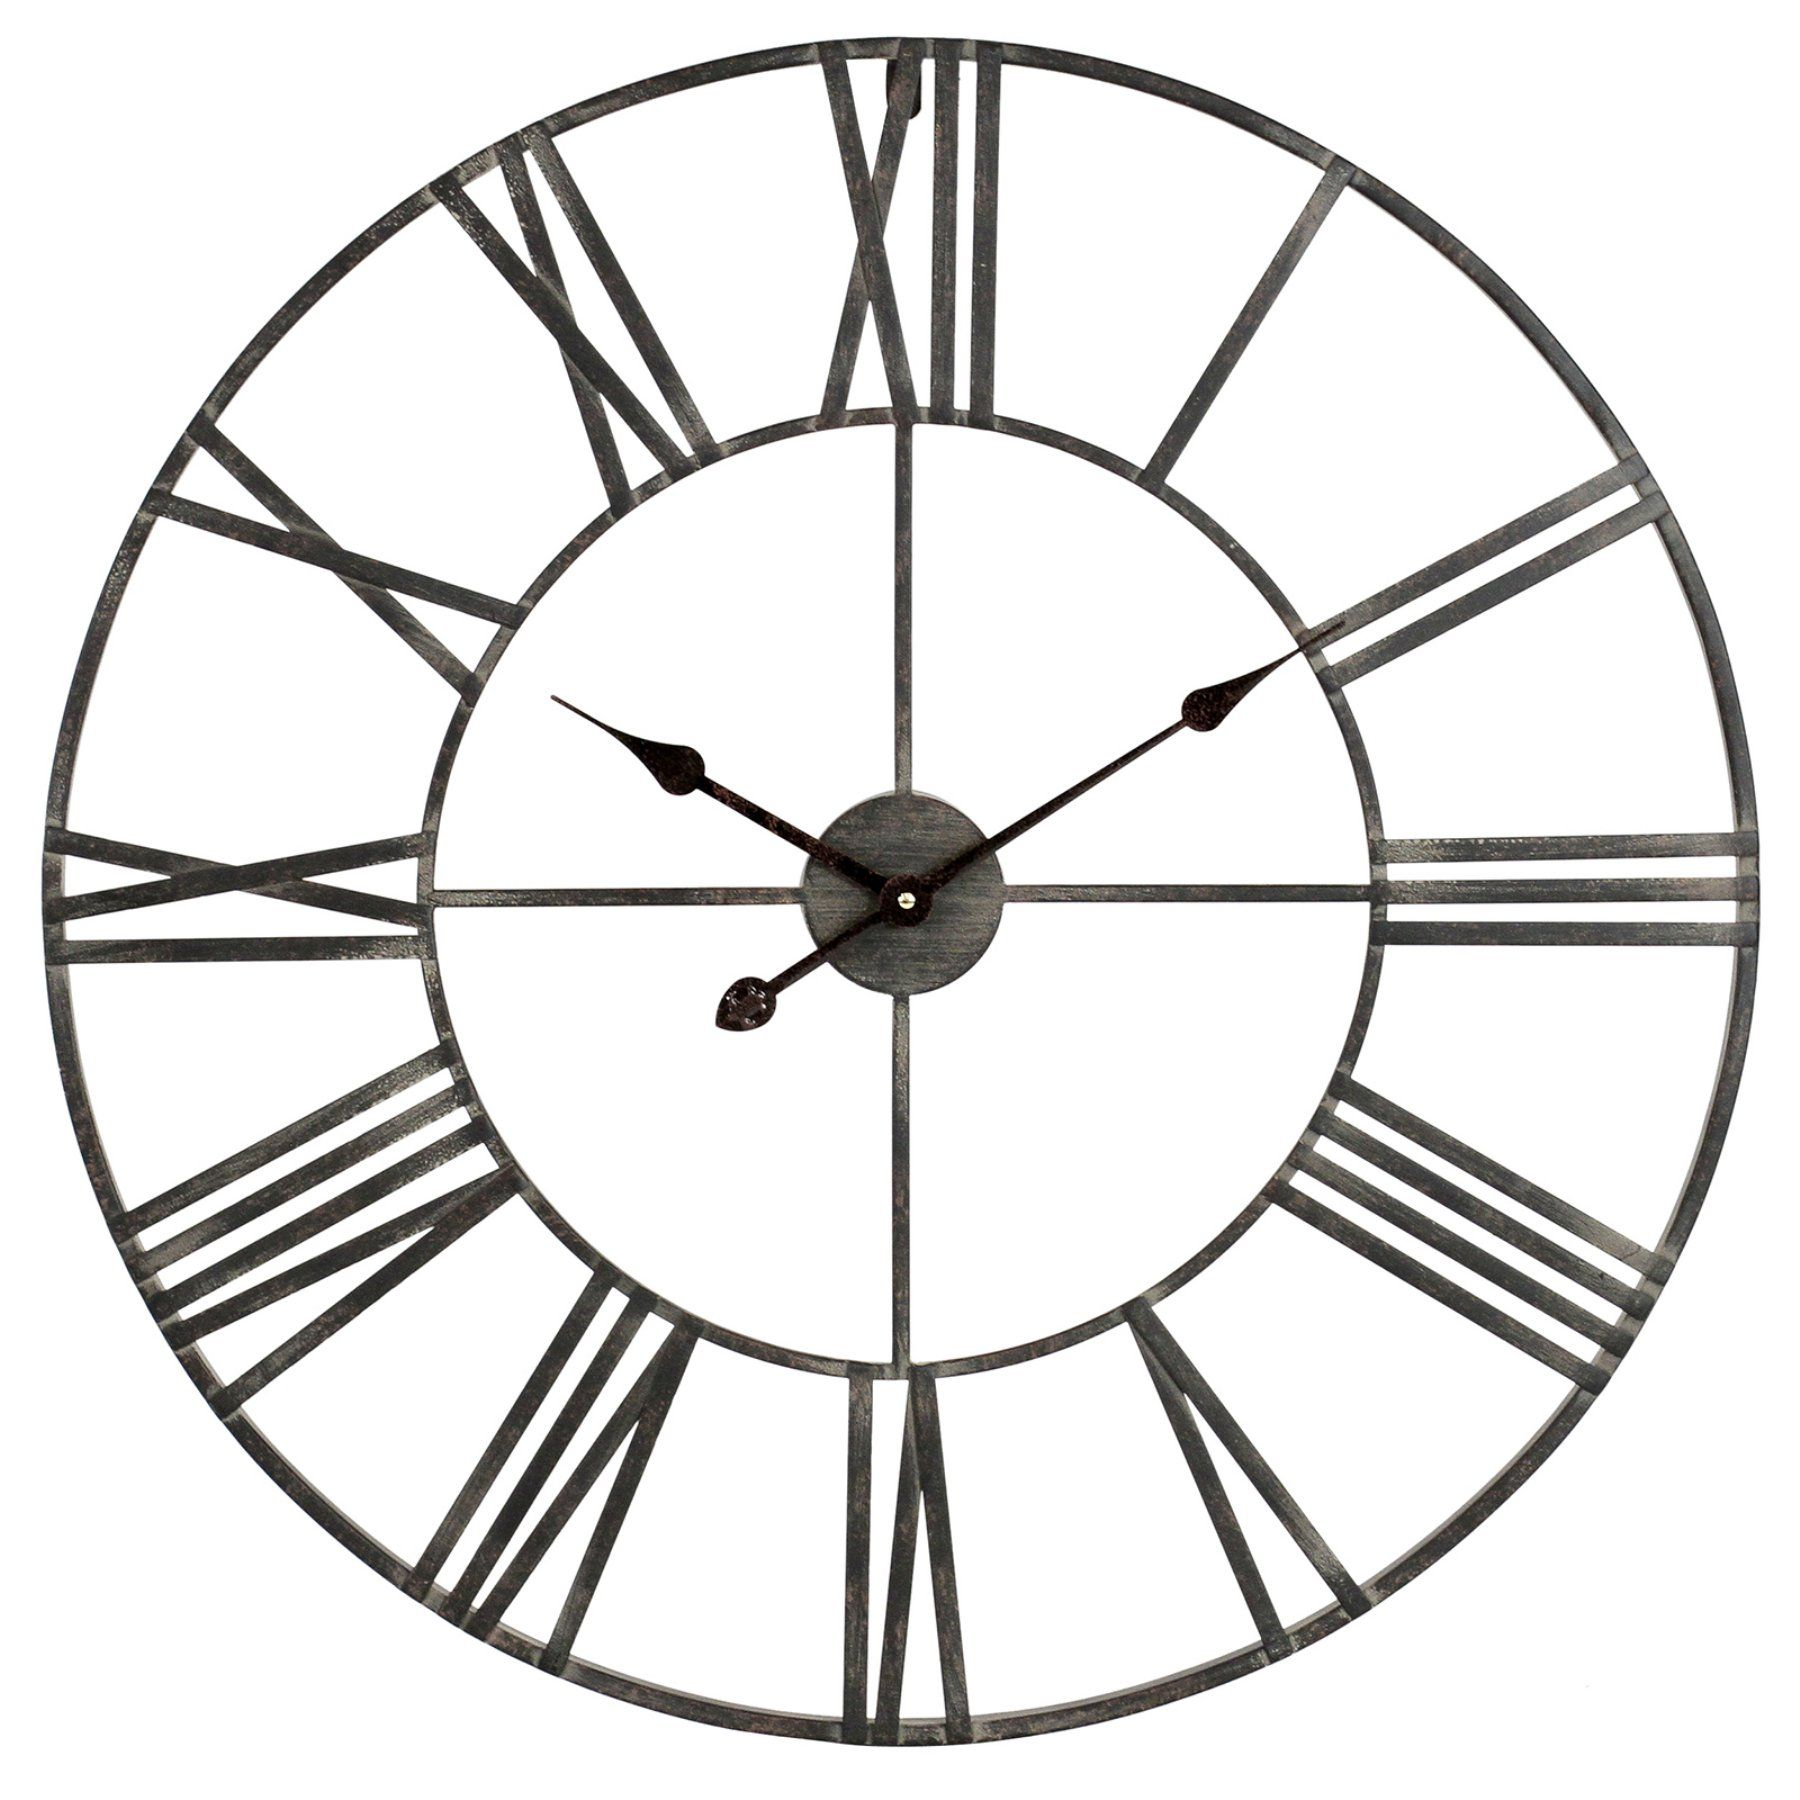 Aspire home accents solange round metal in wall clock